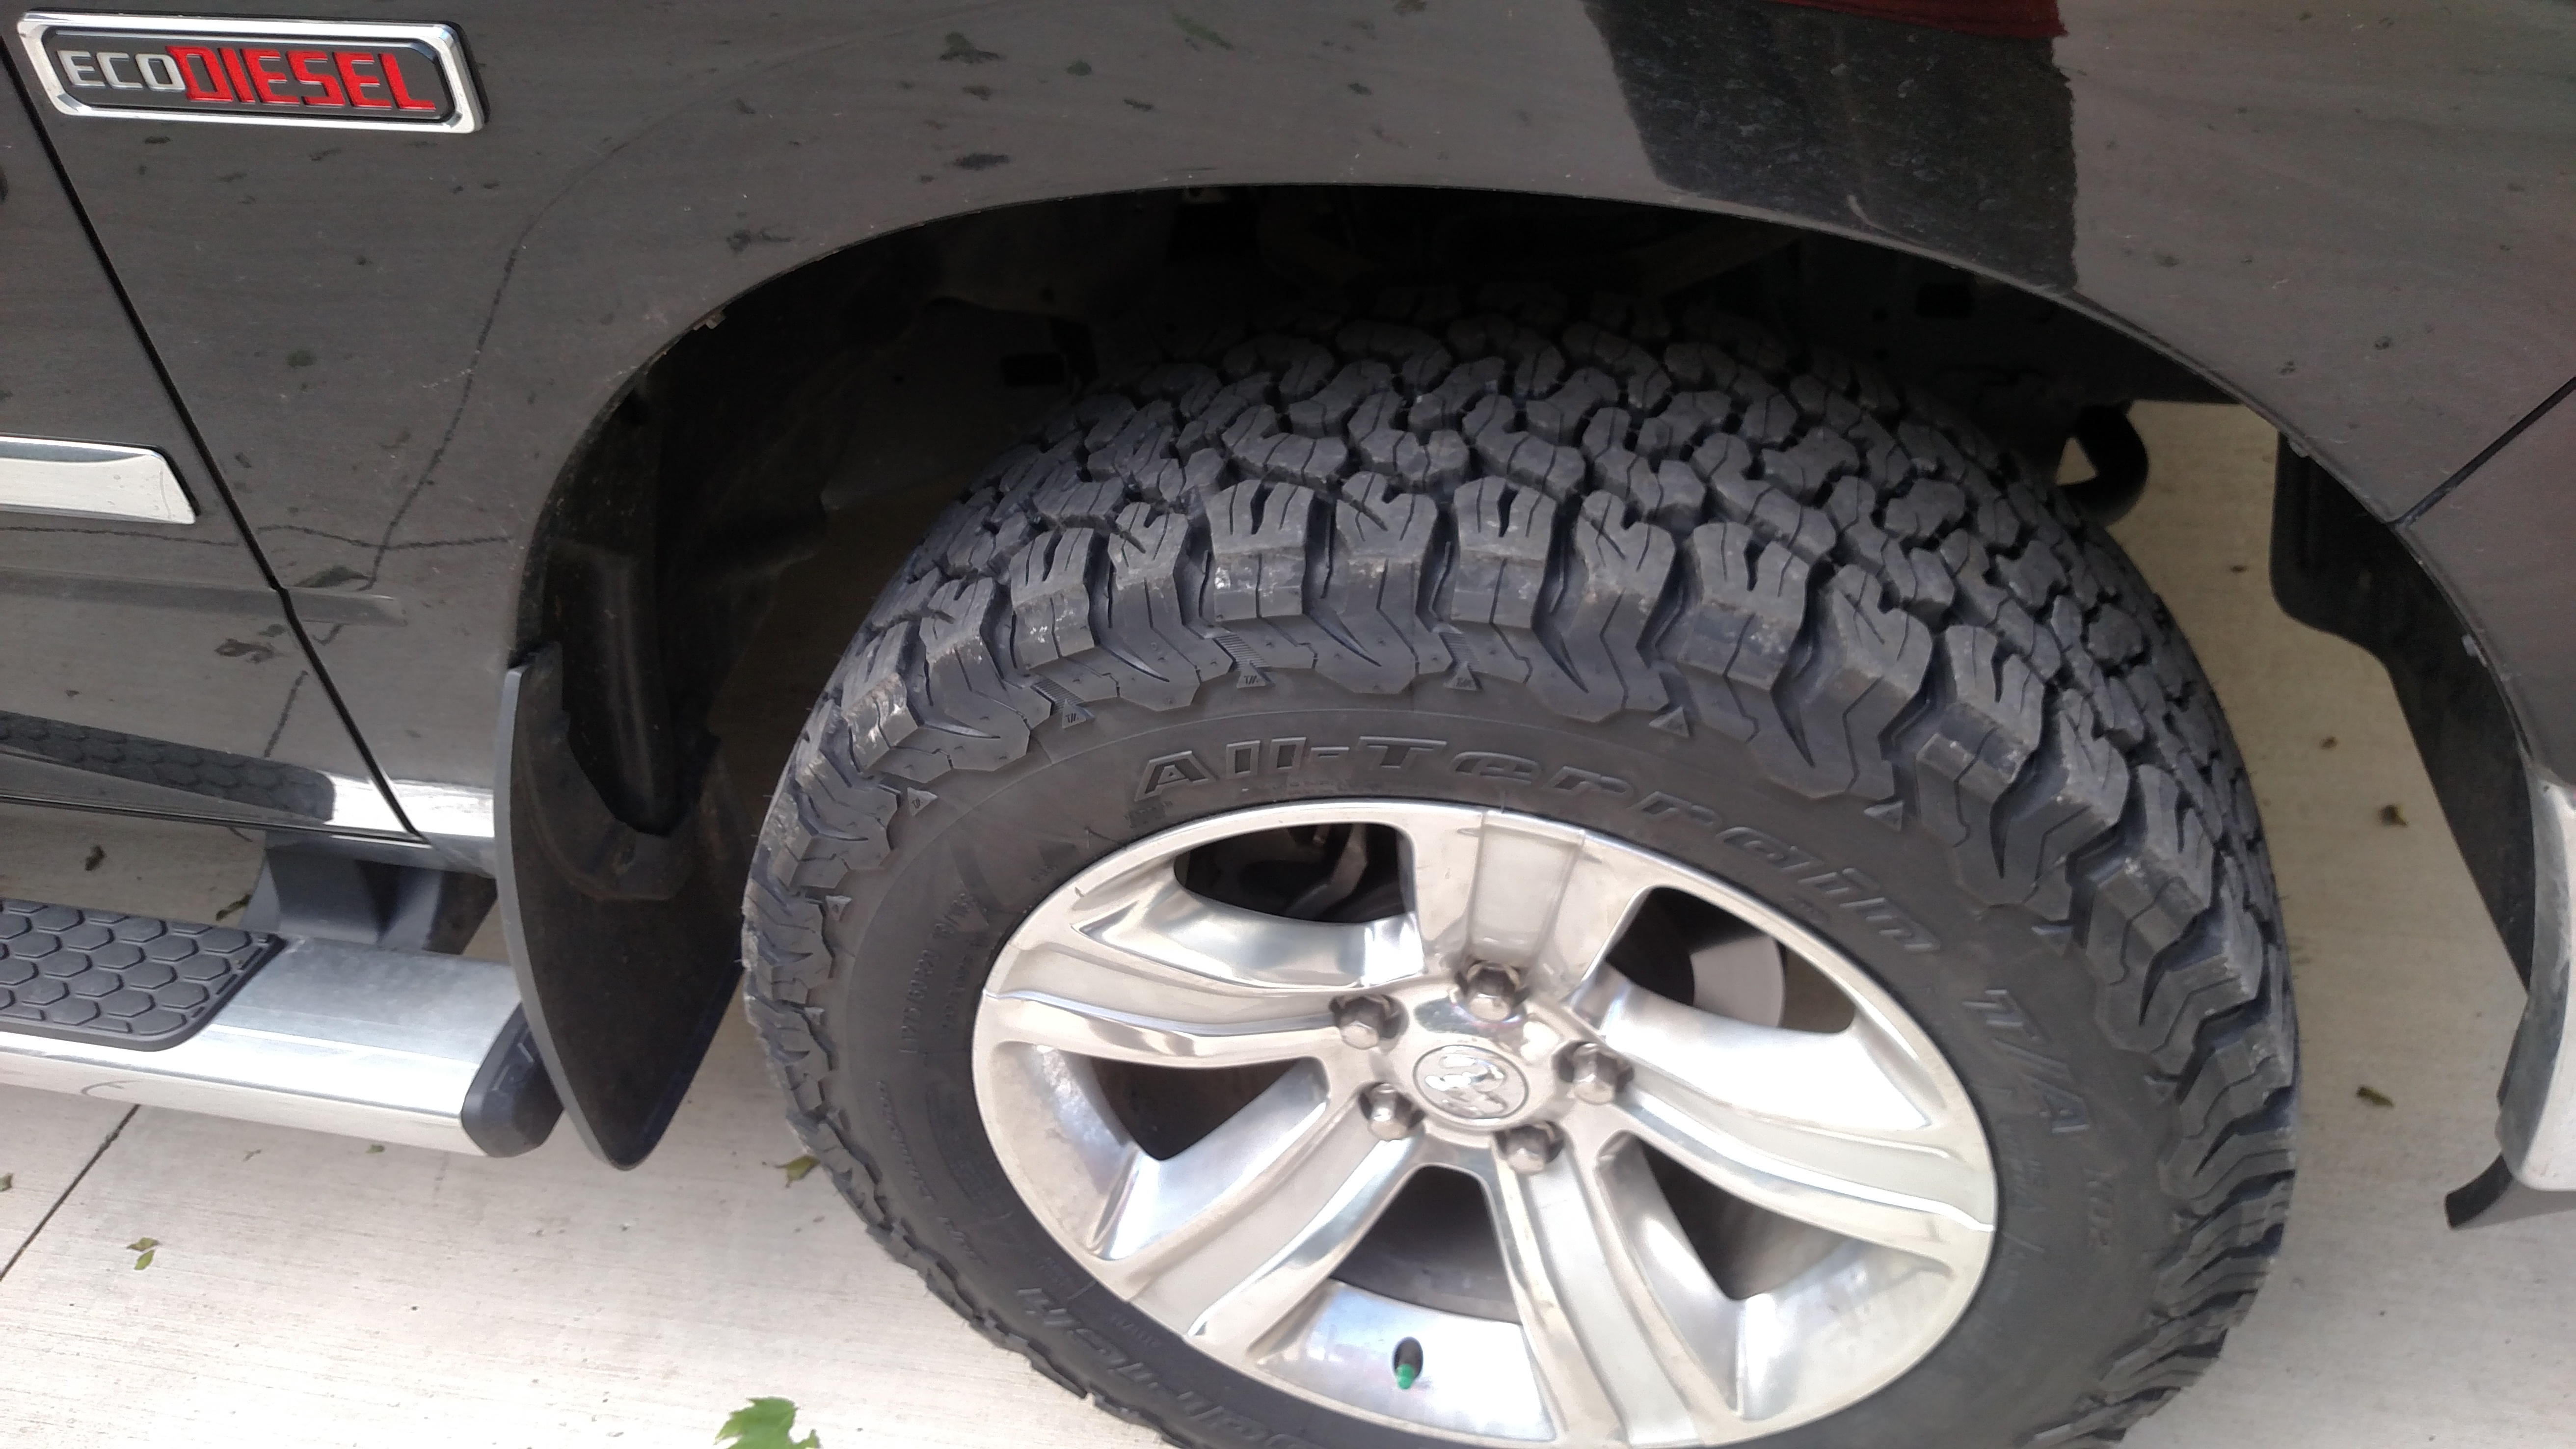 Truck Mud Tires >> New 275/60r20 Bf Goodrich A/T Ko2 tires installed